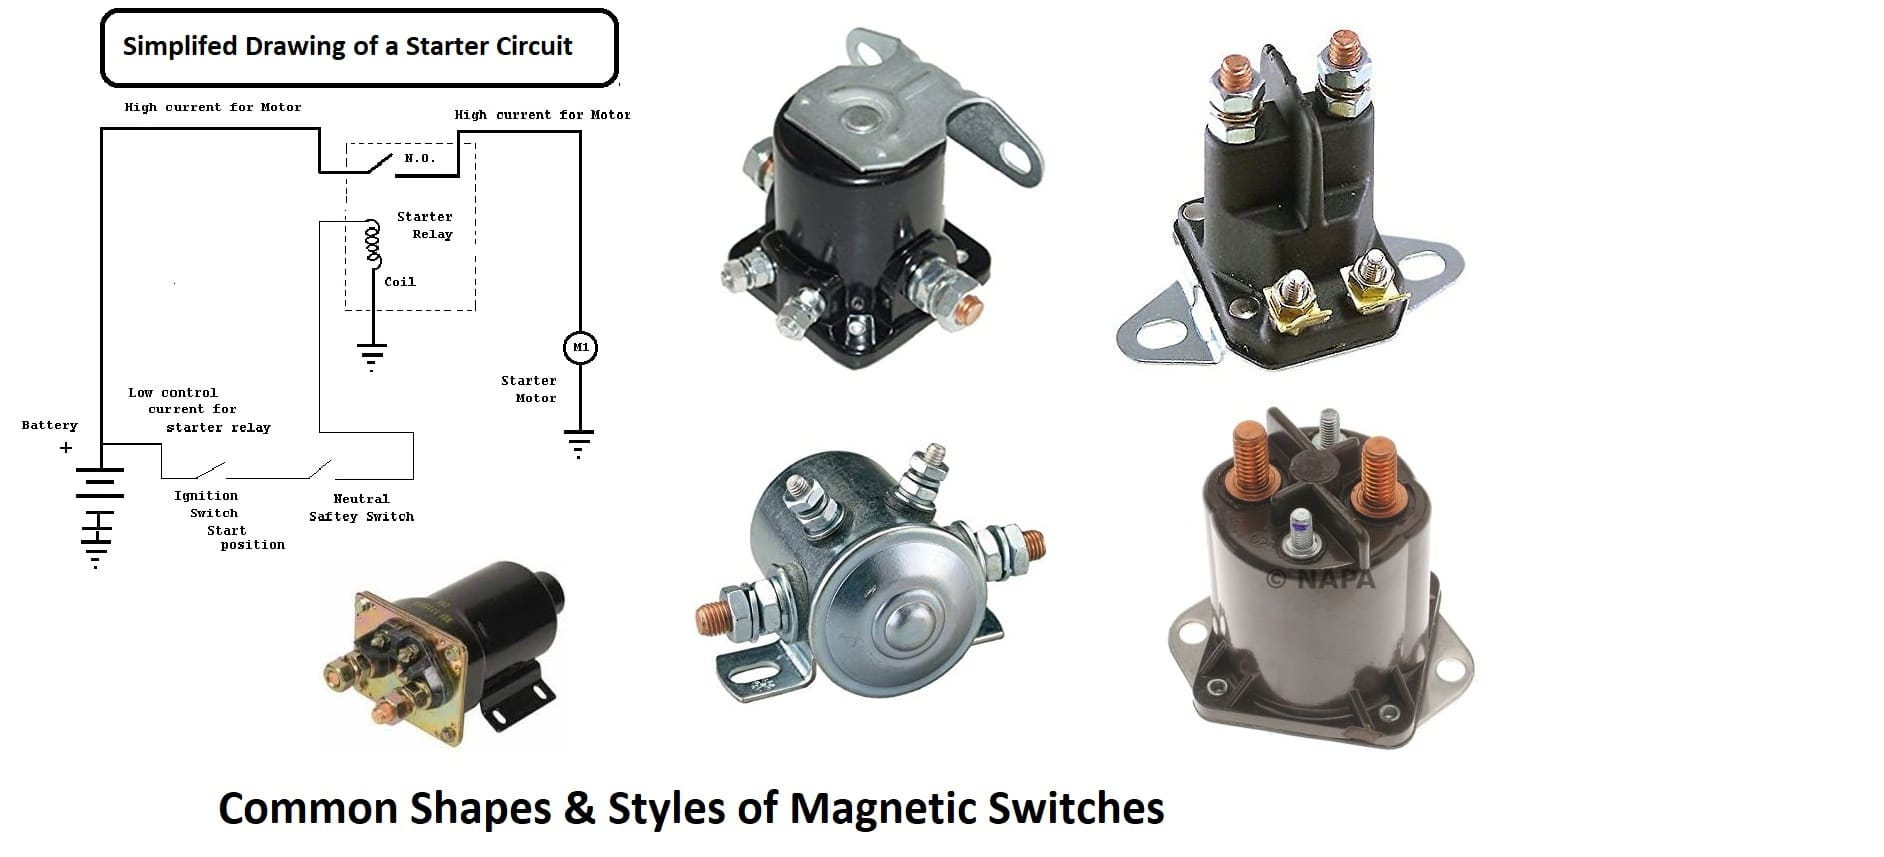 Magnetic Switches Diagram and Styles